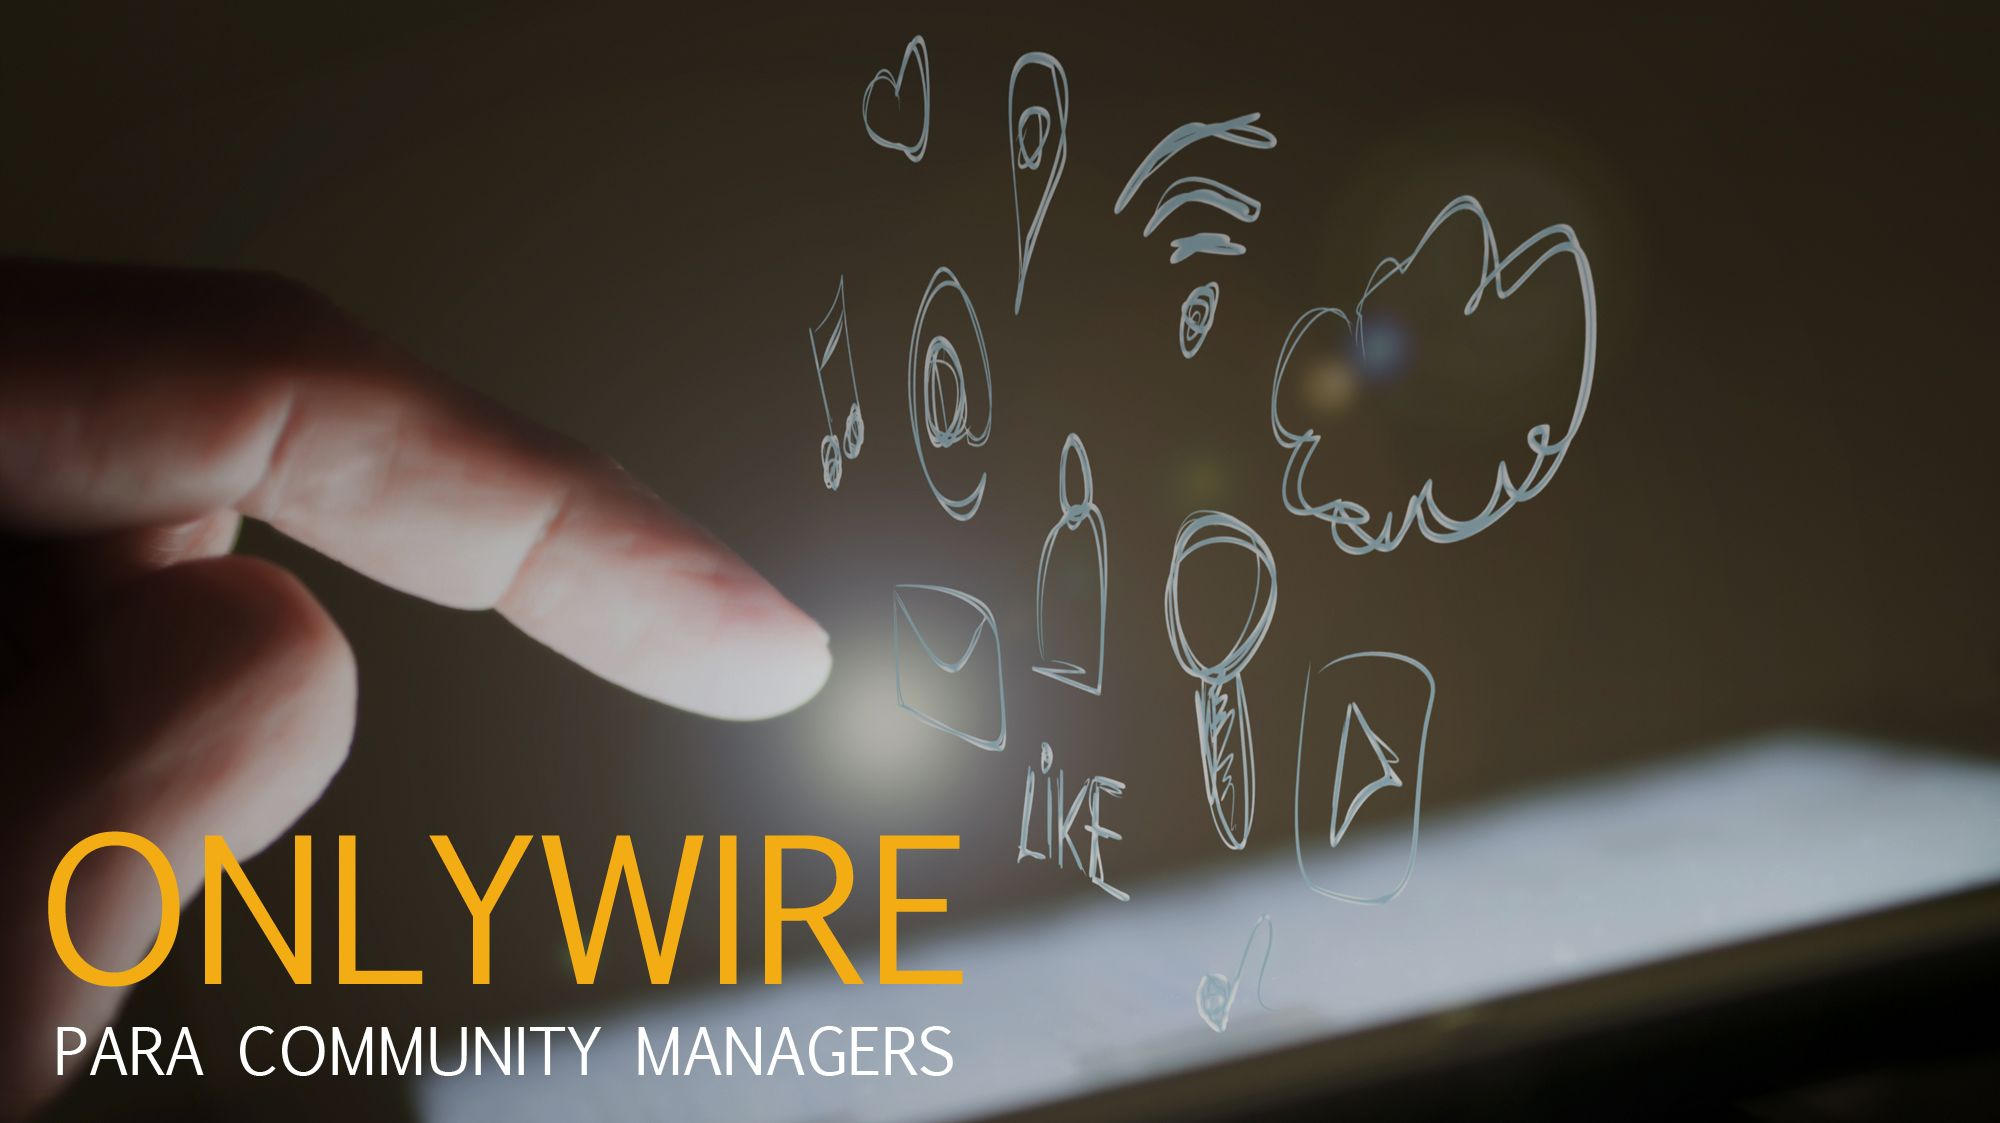 ONLYWIRE